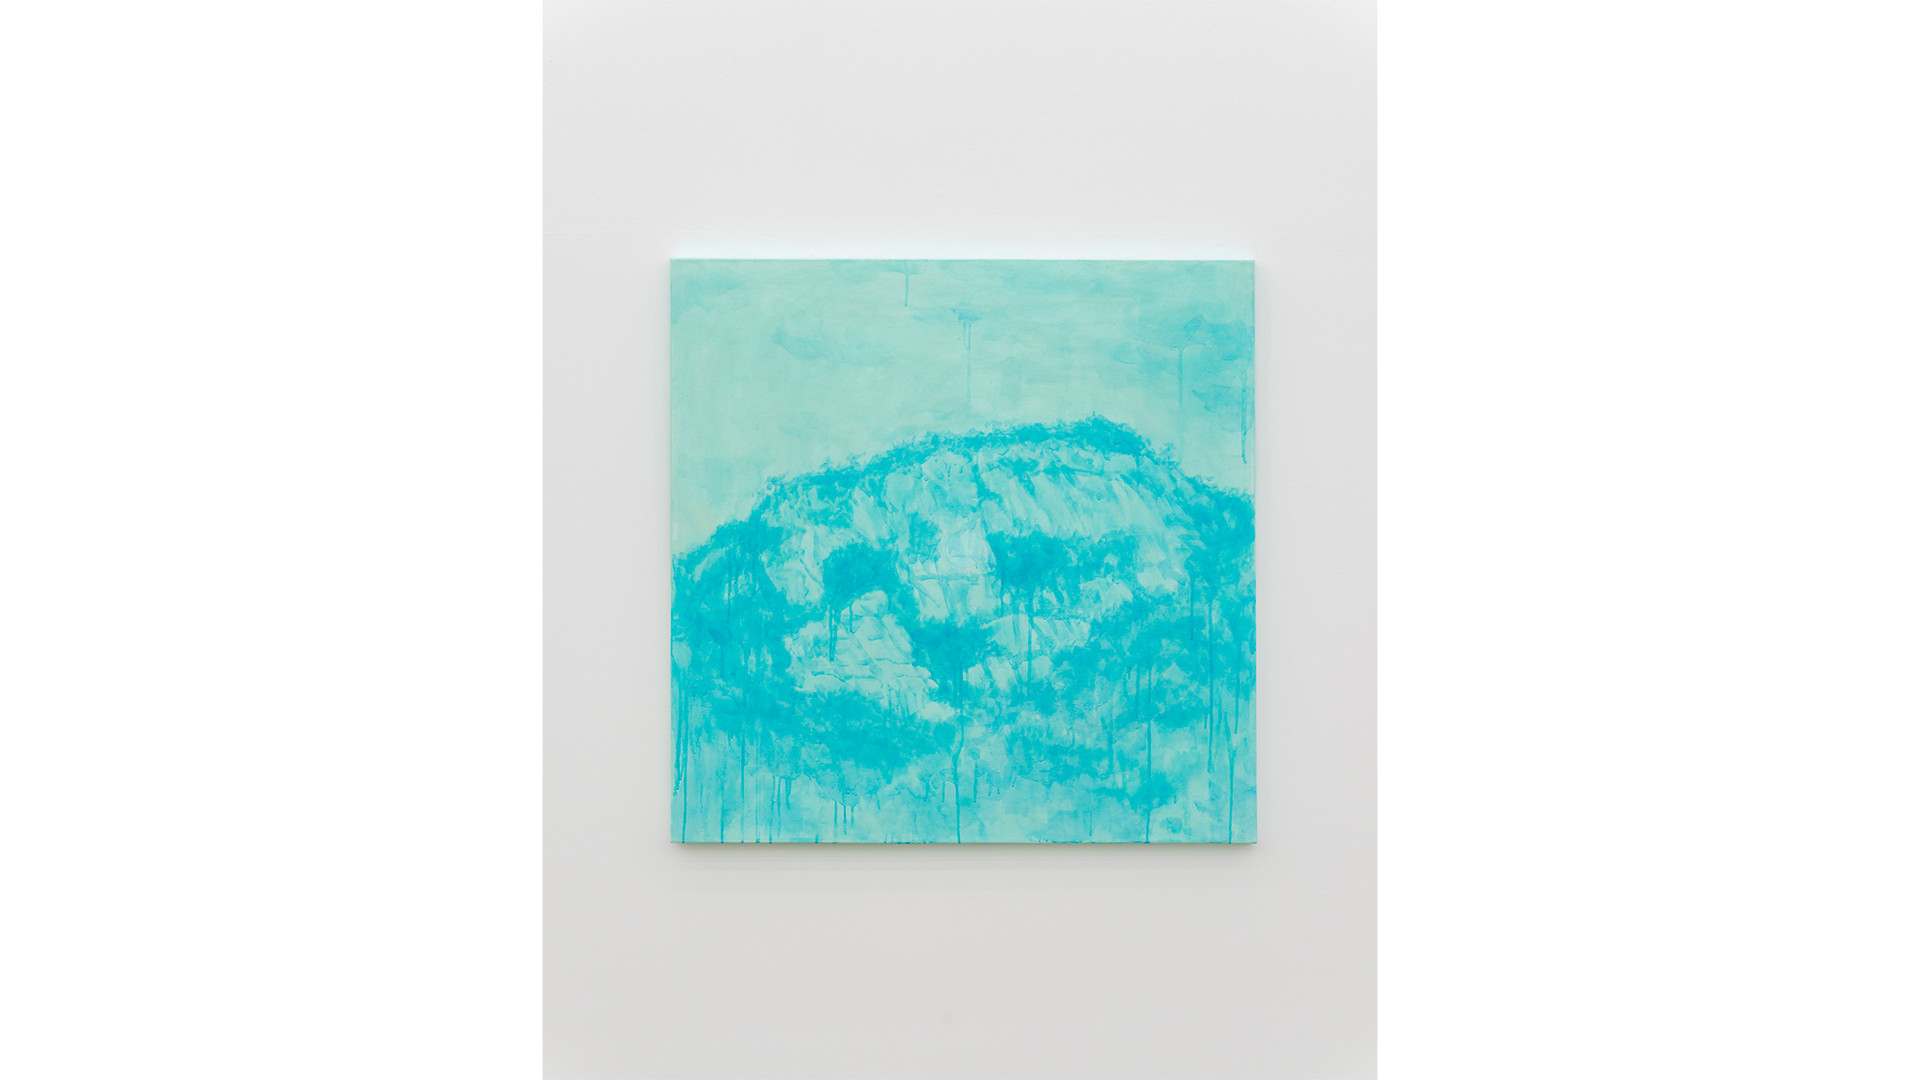 The Inwangsan Mountain with A Particle, 2020, acrylic & phosphorescent pigment on canvas, 107 x 107 cm